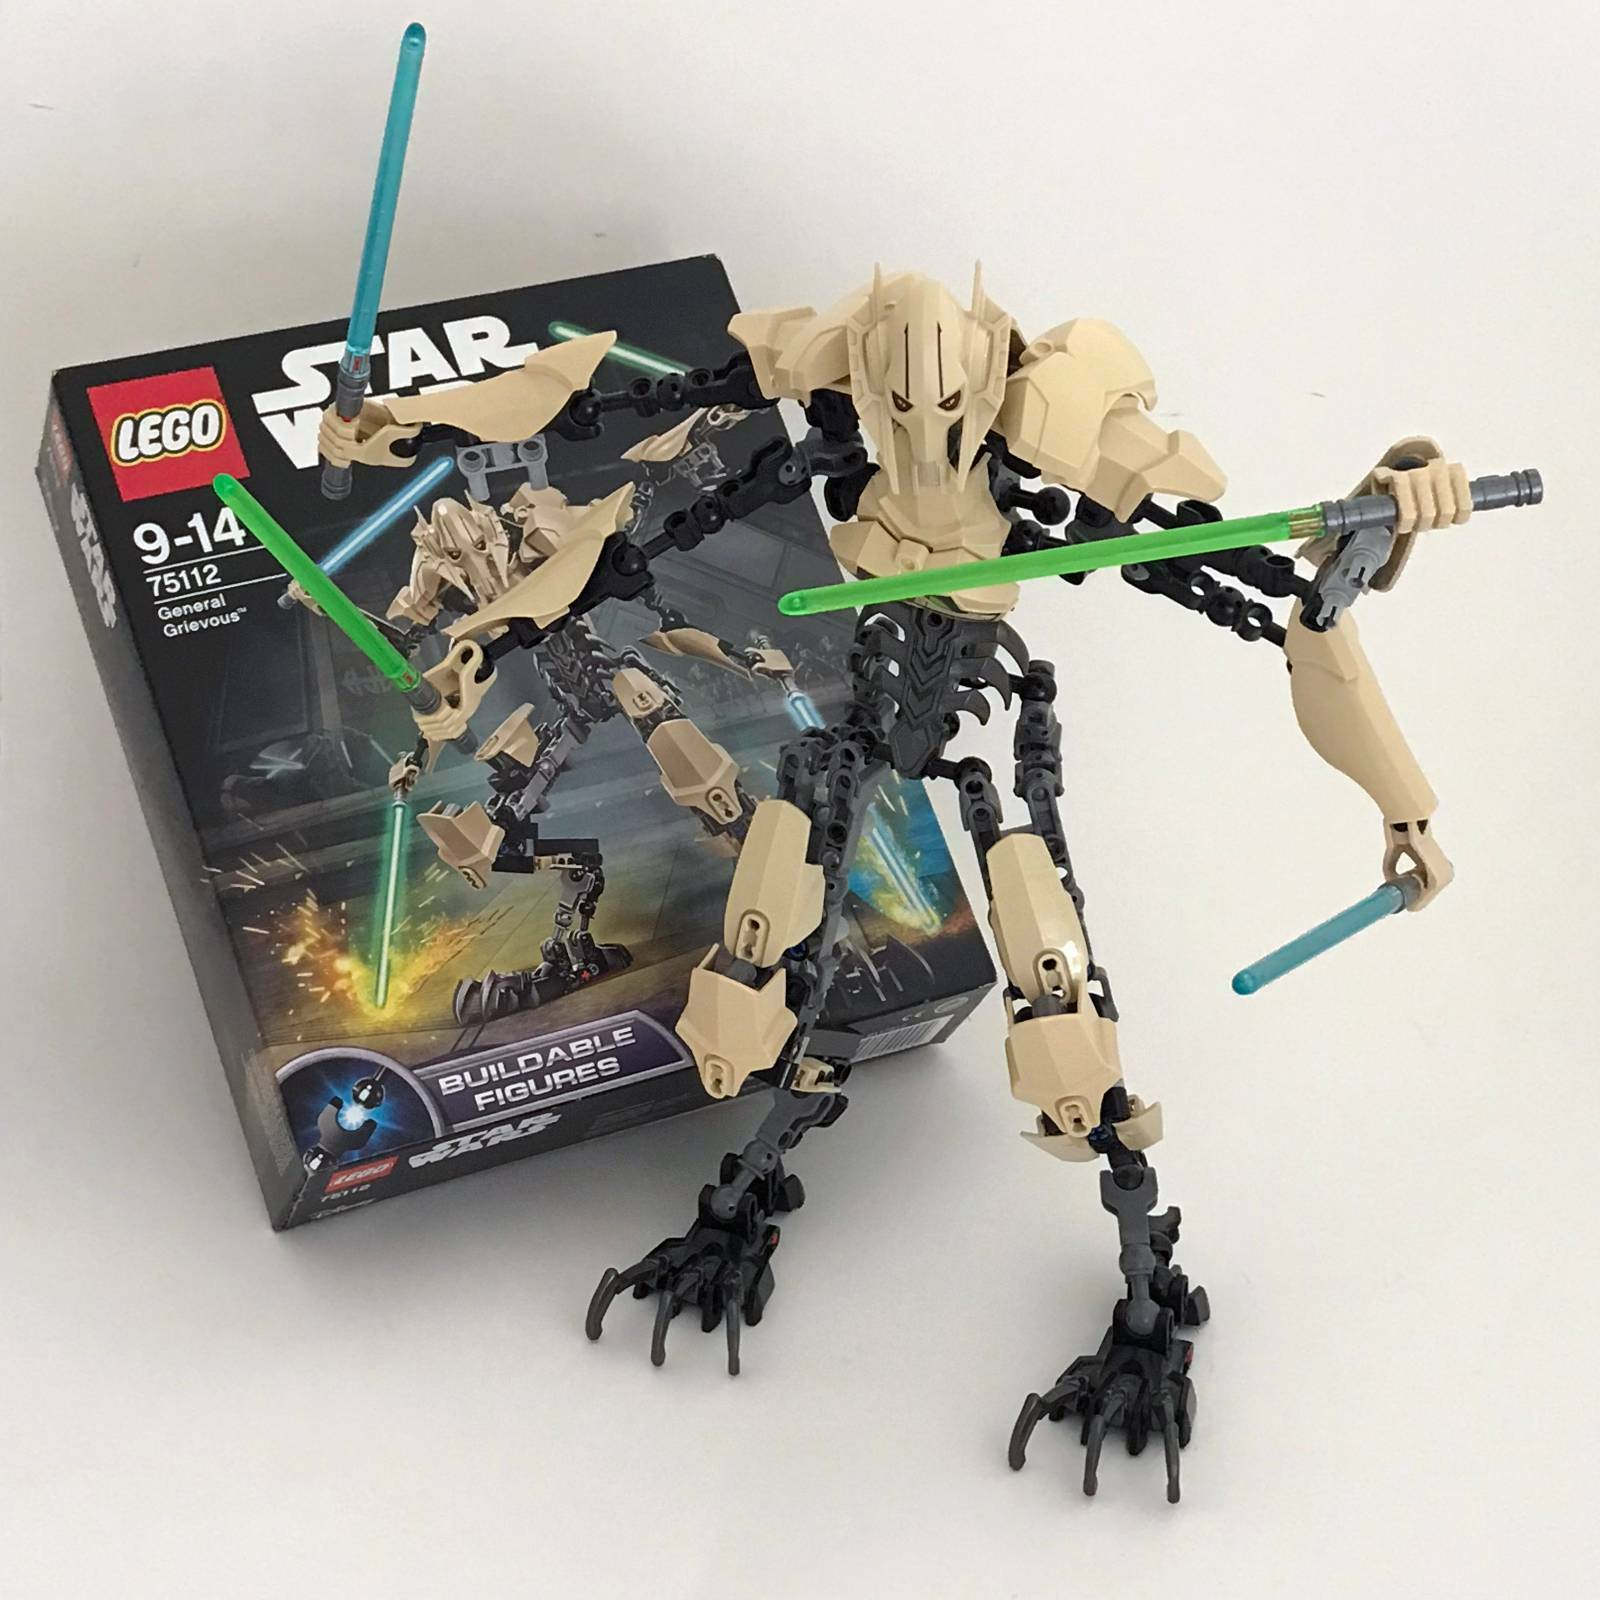 Lego Star Wars set 75112 General Grievous, complete, as new